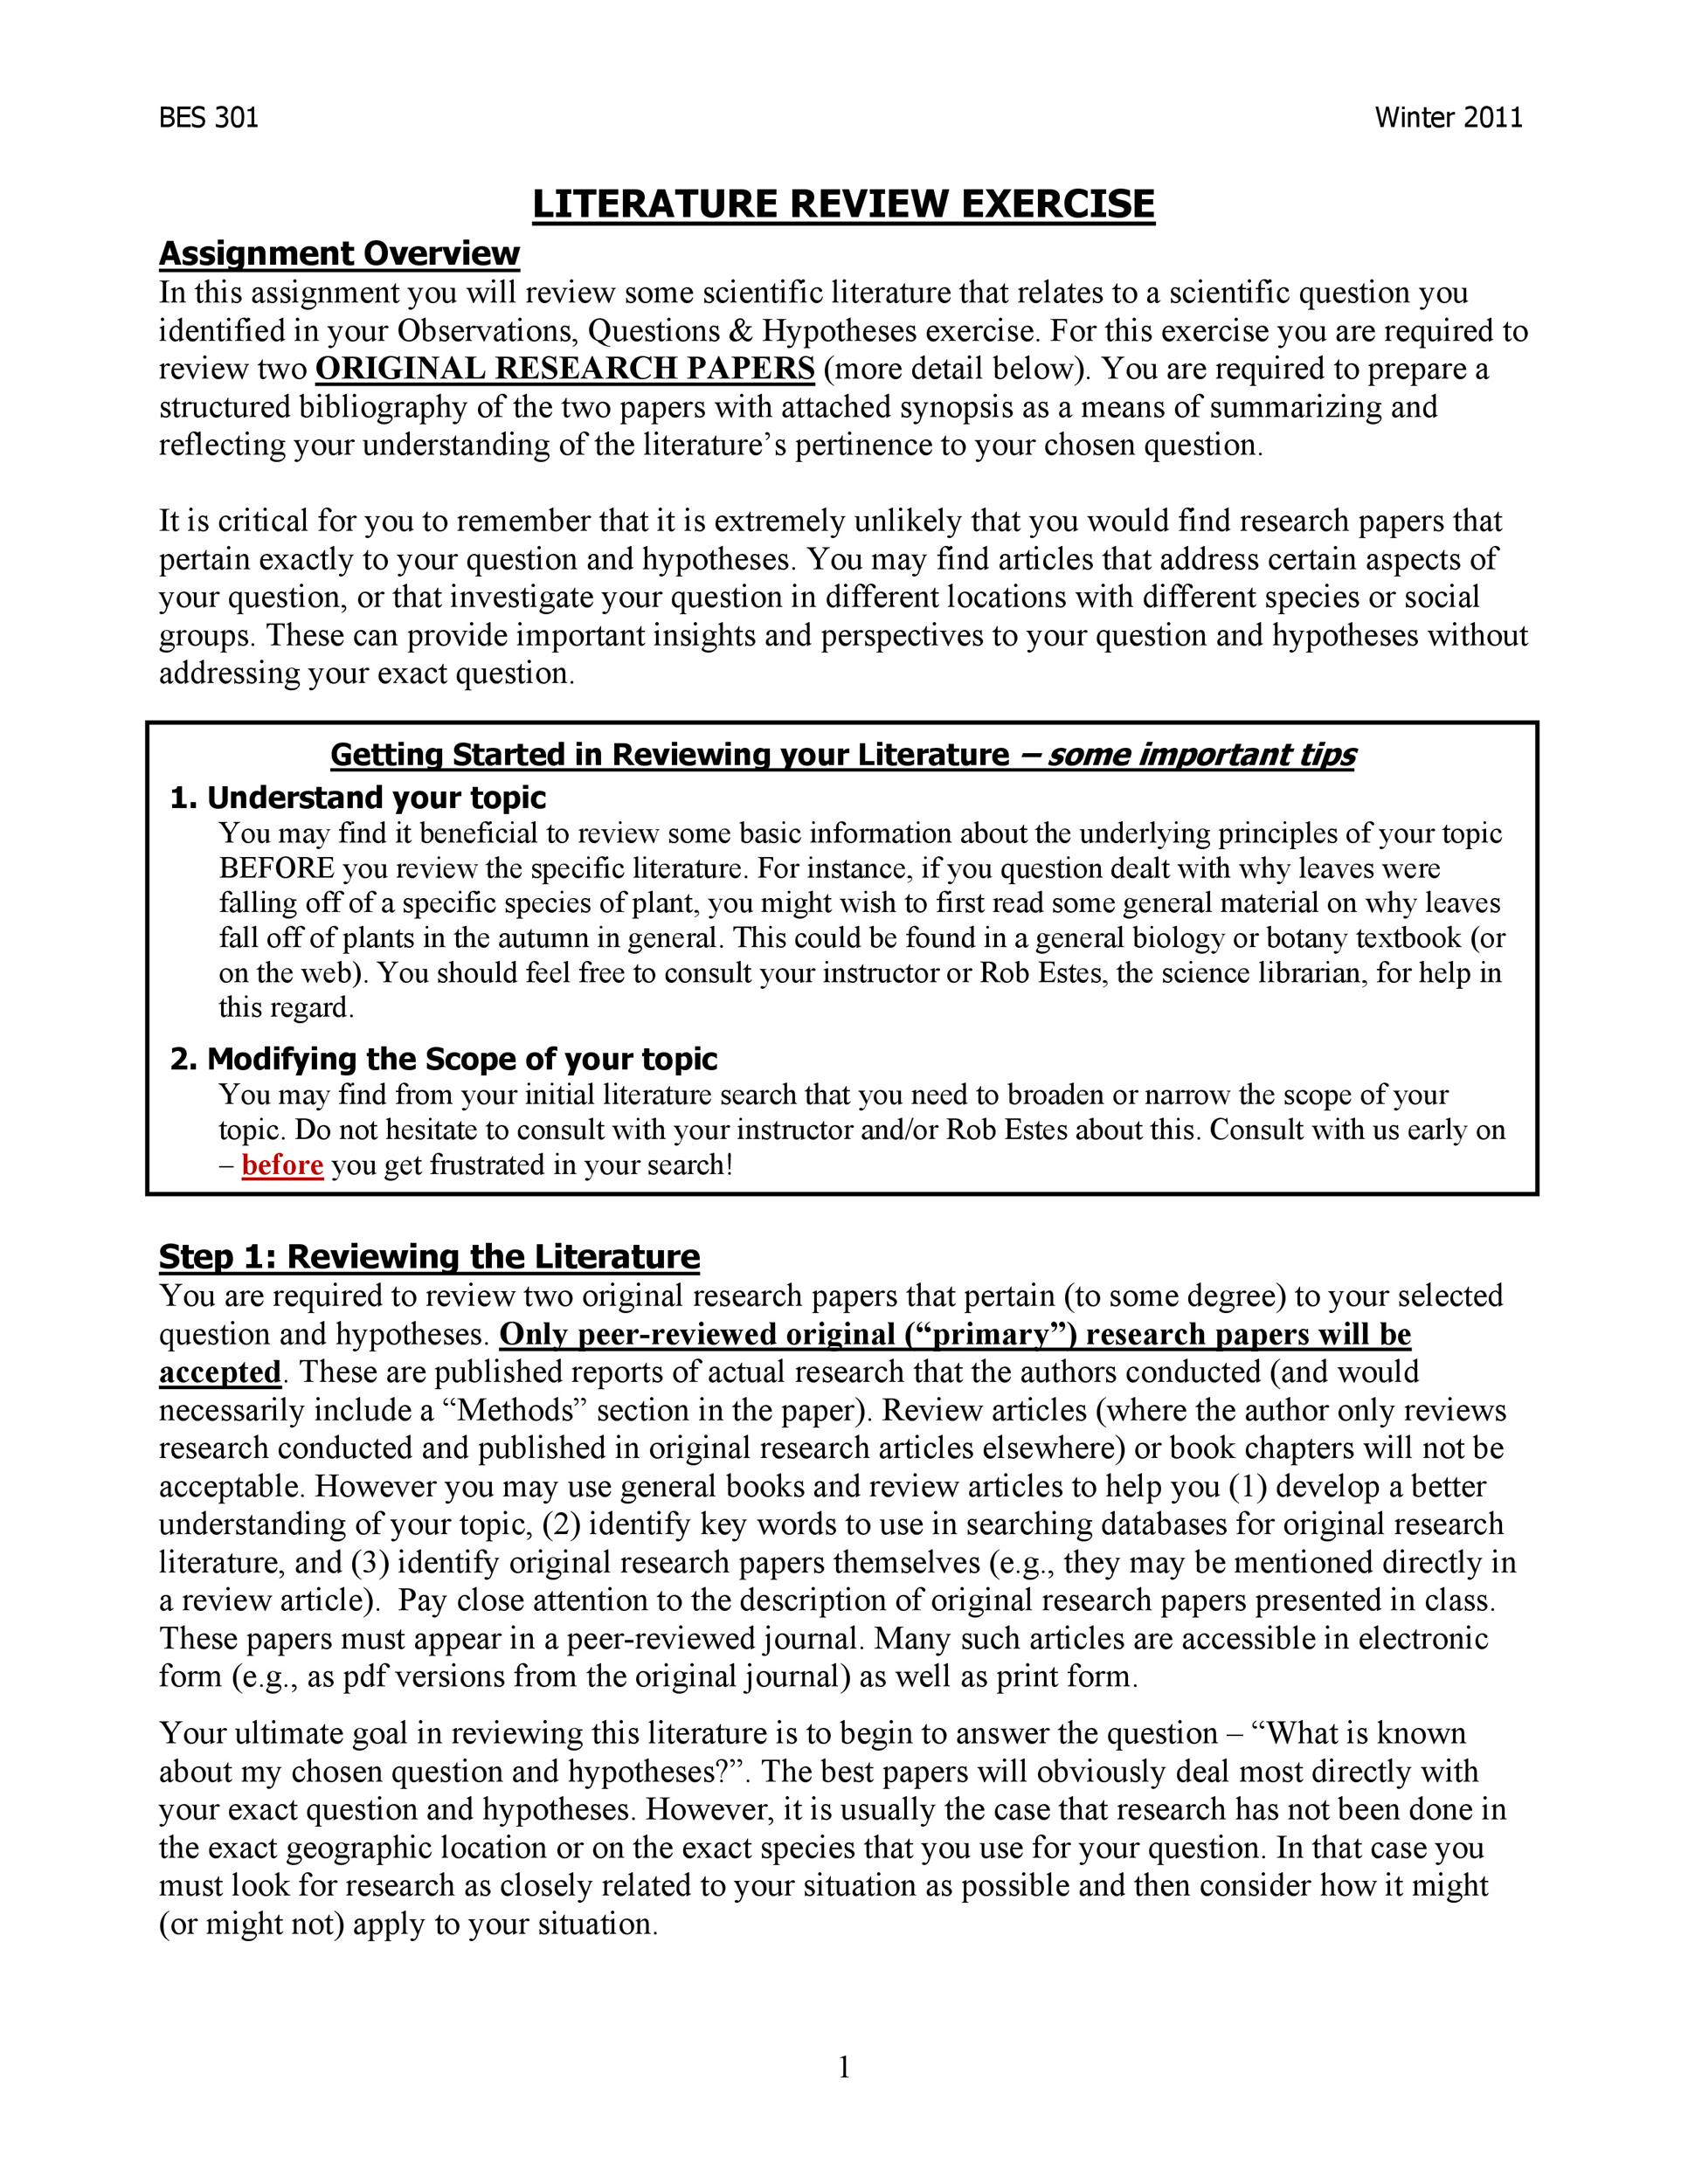 Free literature review template 24